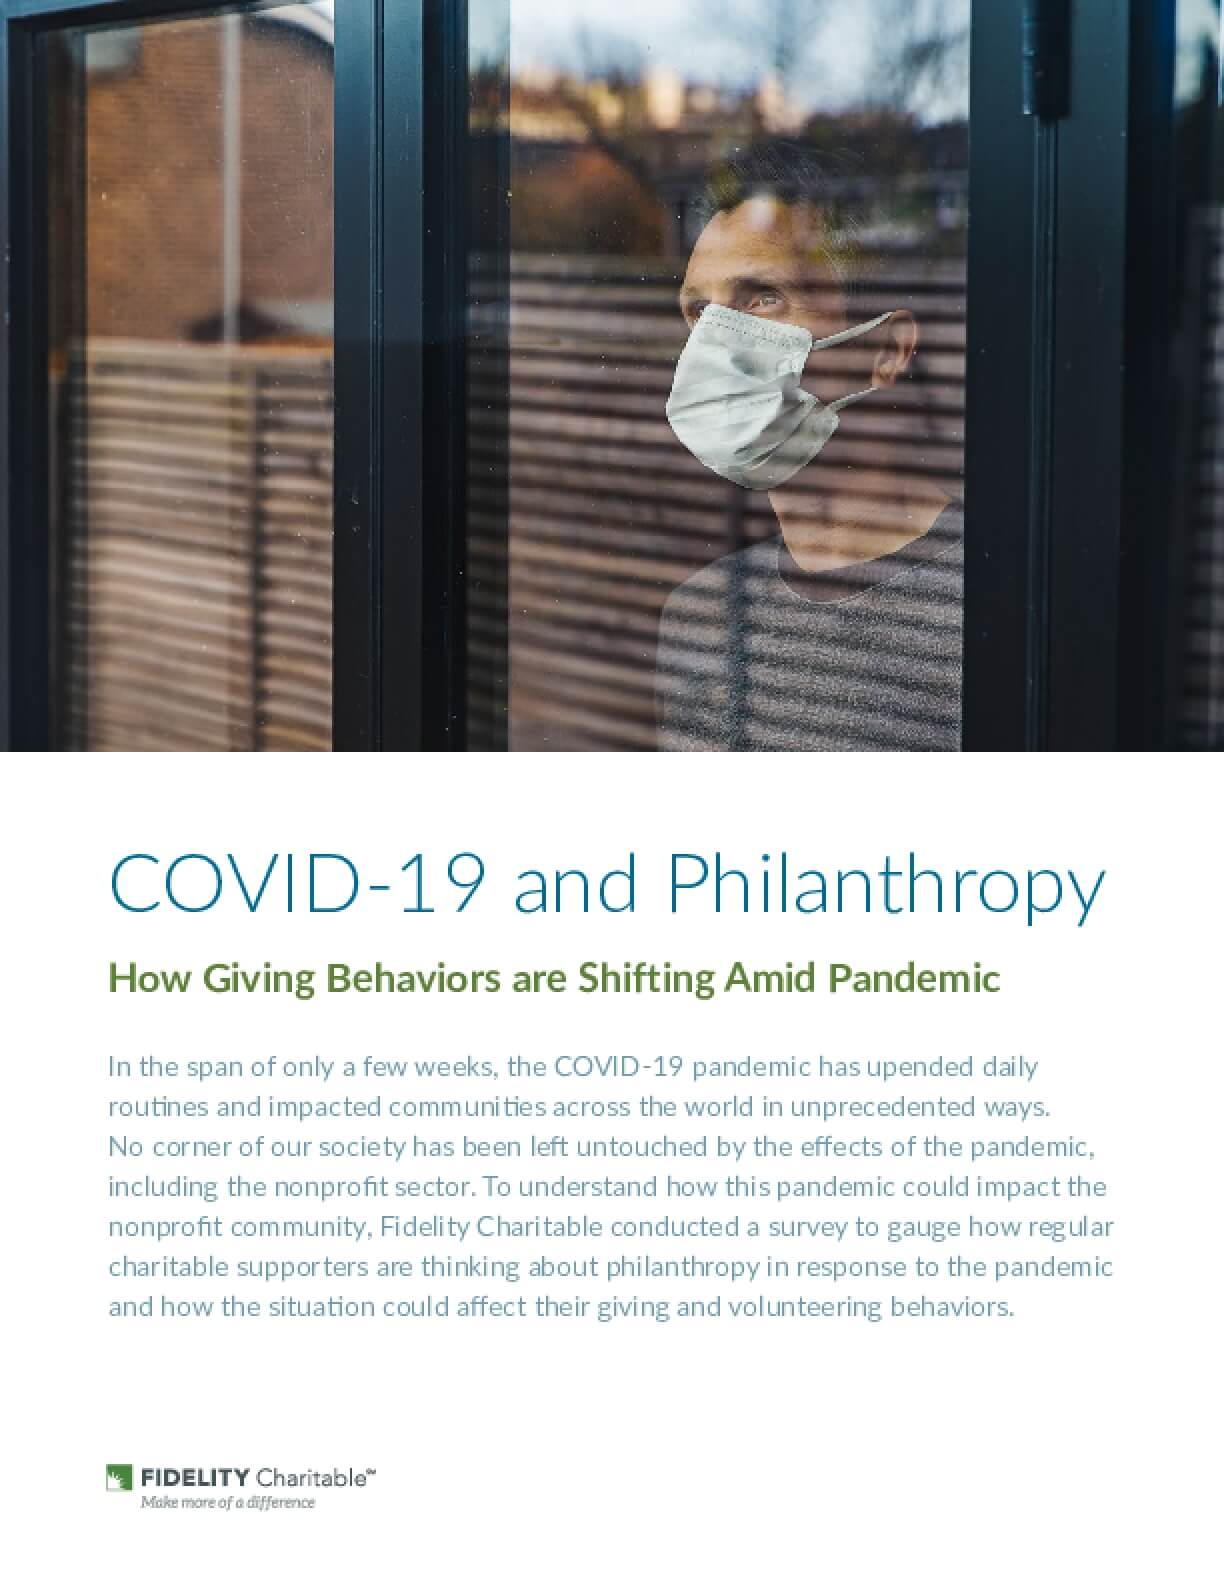 COVID-19 and Philanthropy: How Giving Behaviors are Shifting Amid Pandemic